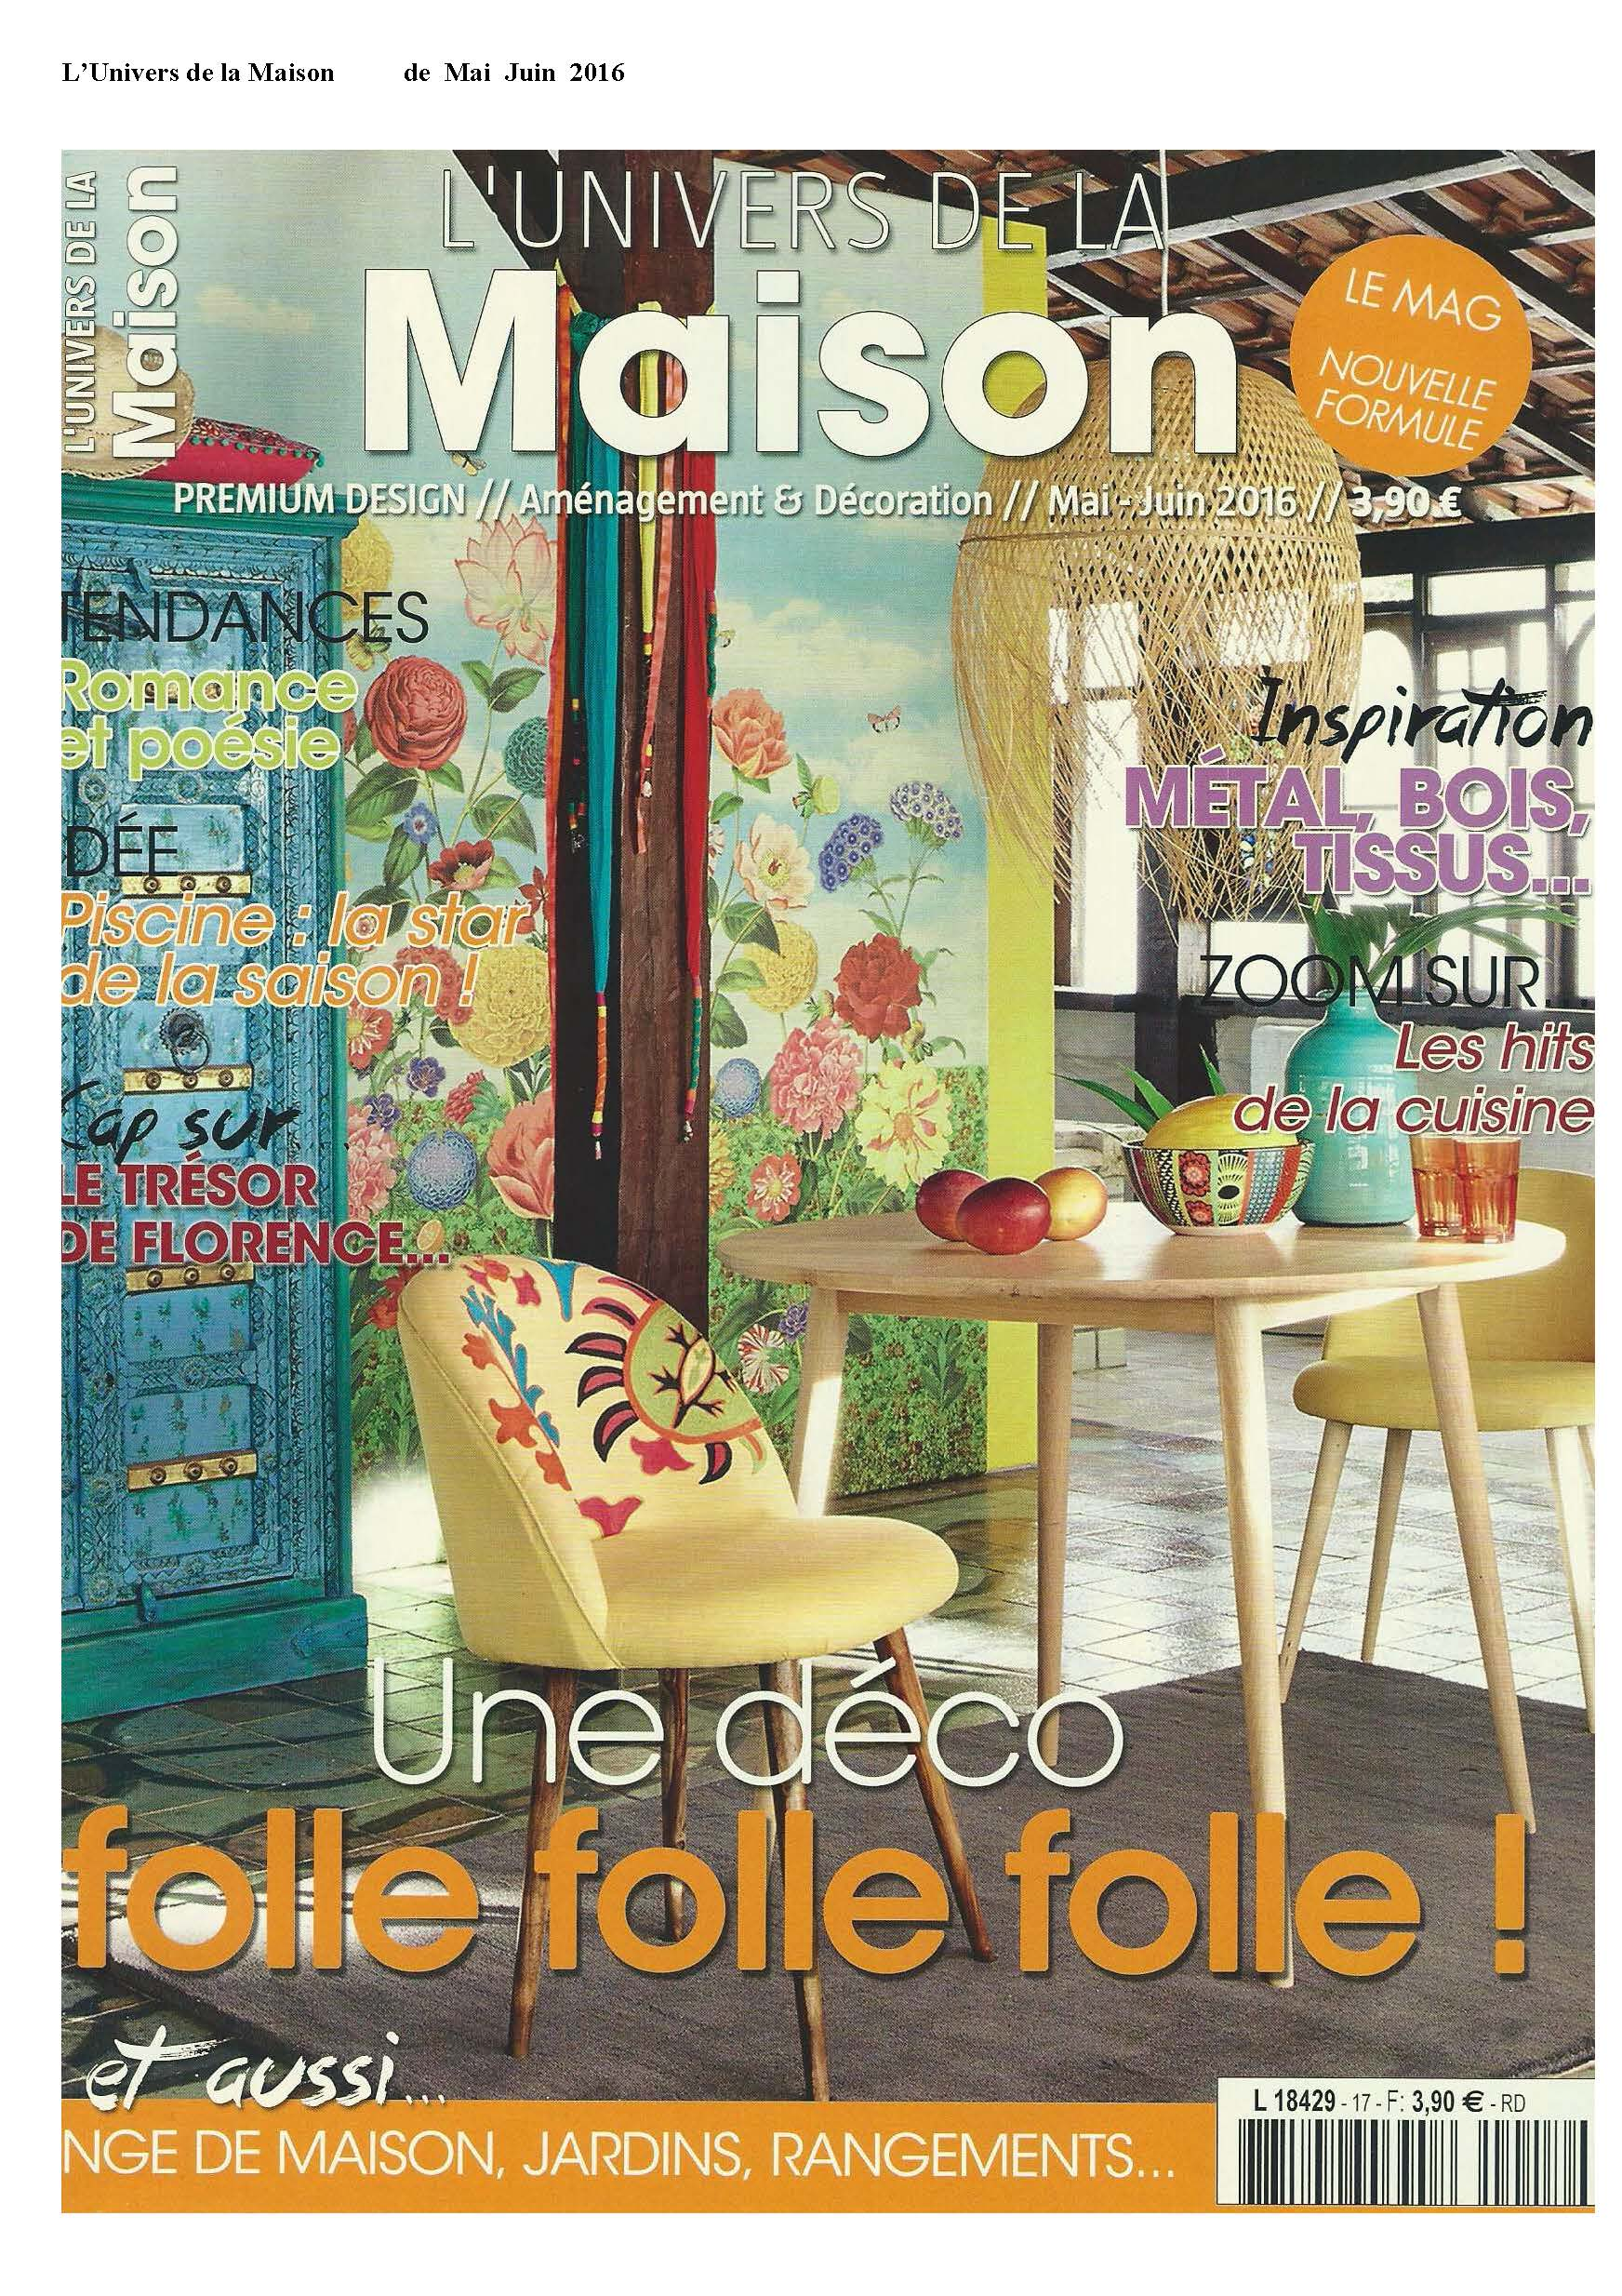 L'univers de la maison May-June 2016